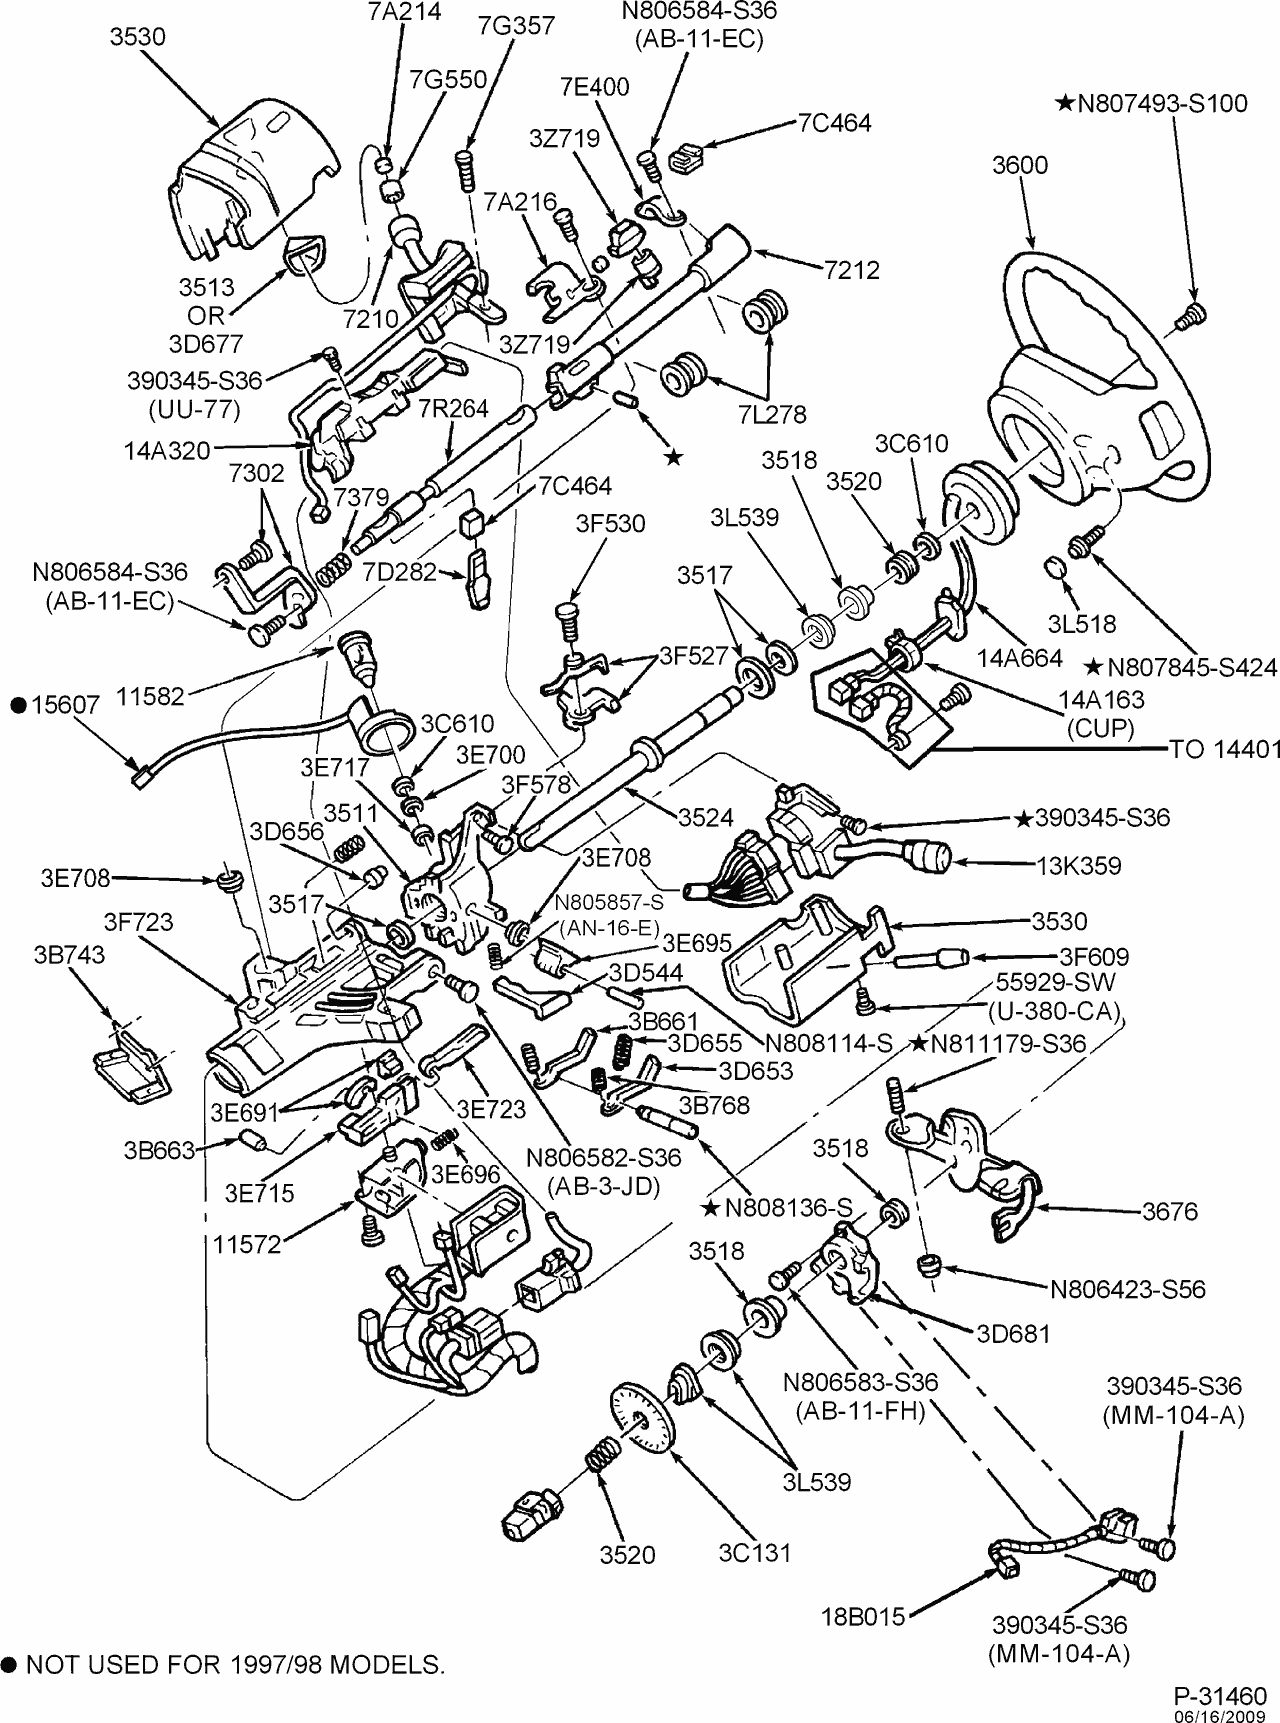 97 Ford Powerstroke Fuse Box Diagram Wiring Library 2002 F 250 Exploded View For The 1997 F250 Tilt Steering Column Services Rh Steeringcolumnservices Com